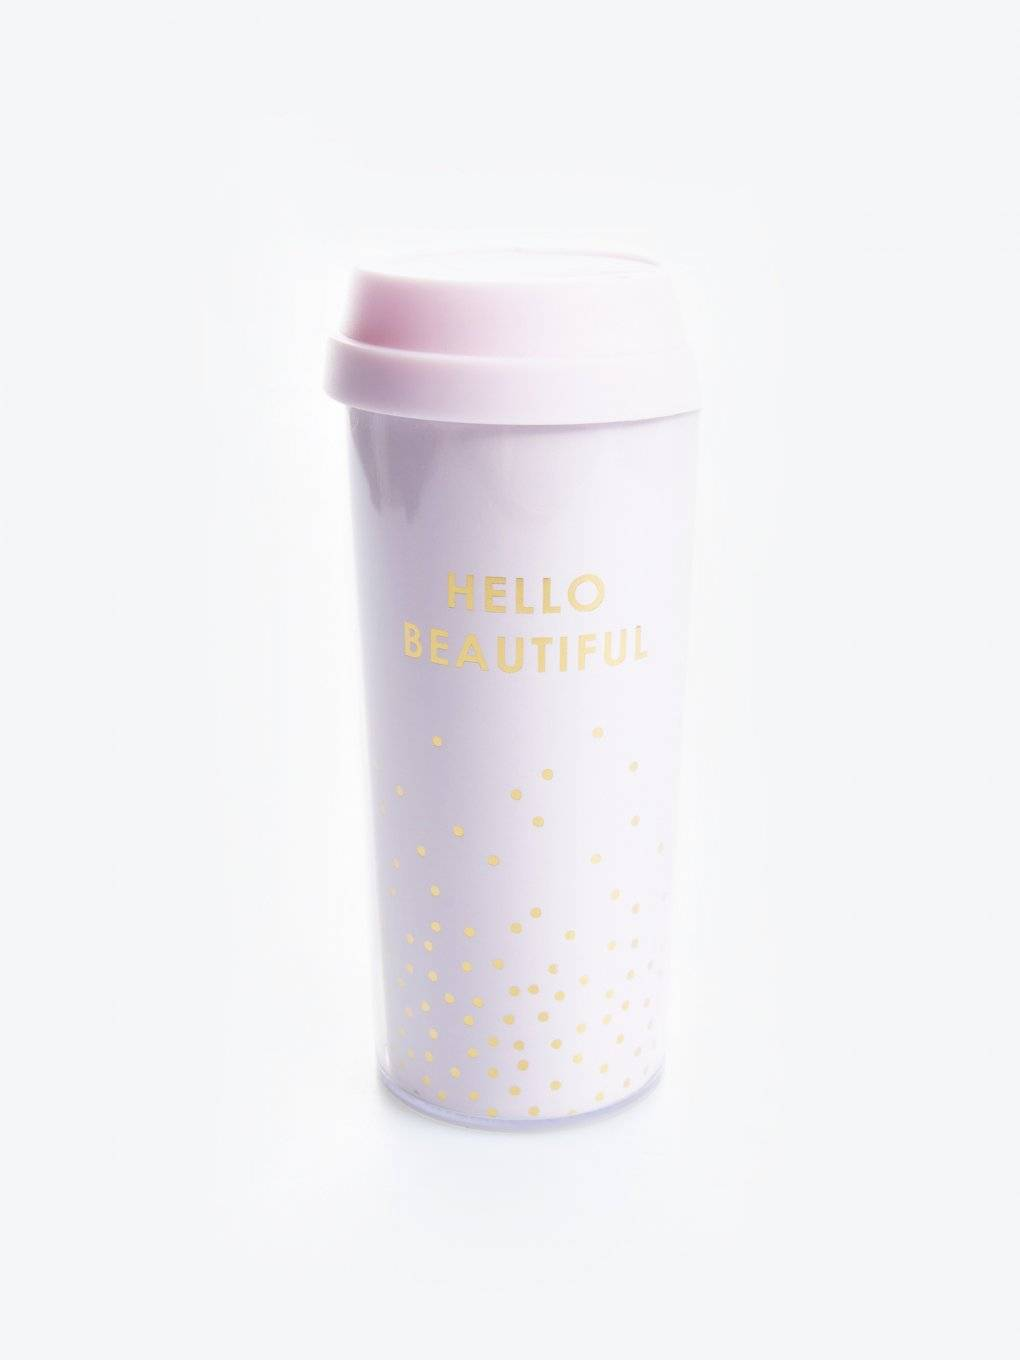 Reusable plastic cup